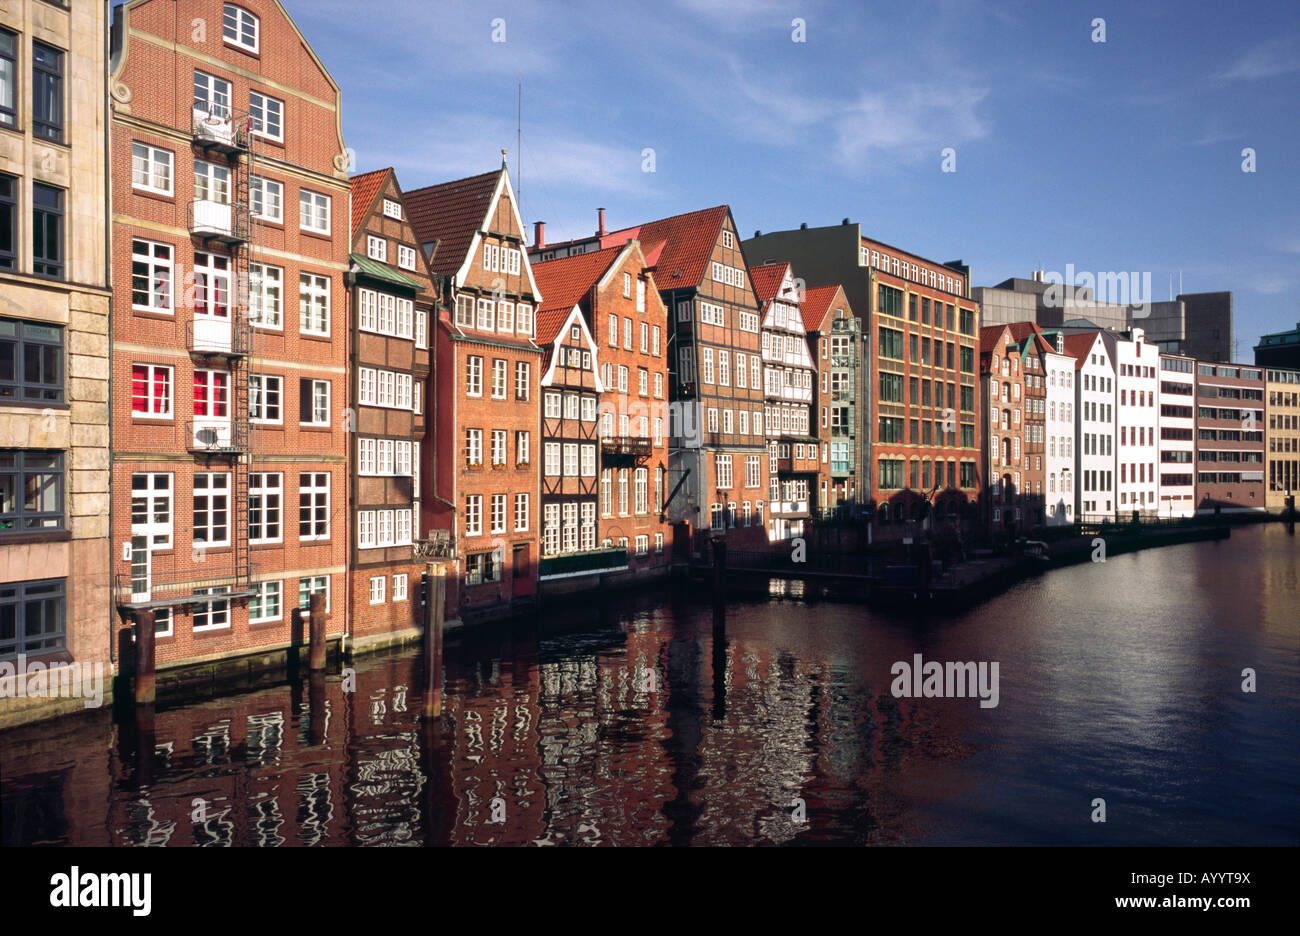 April 13, 2008 - Historic Nikolaifleet in the German city of Hamburg. The port of Hamburg started its development Stock Photo